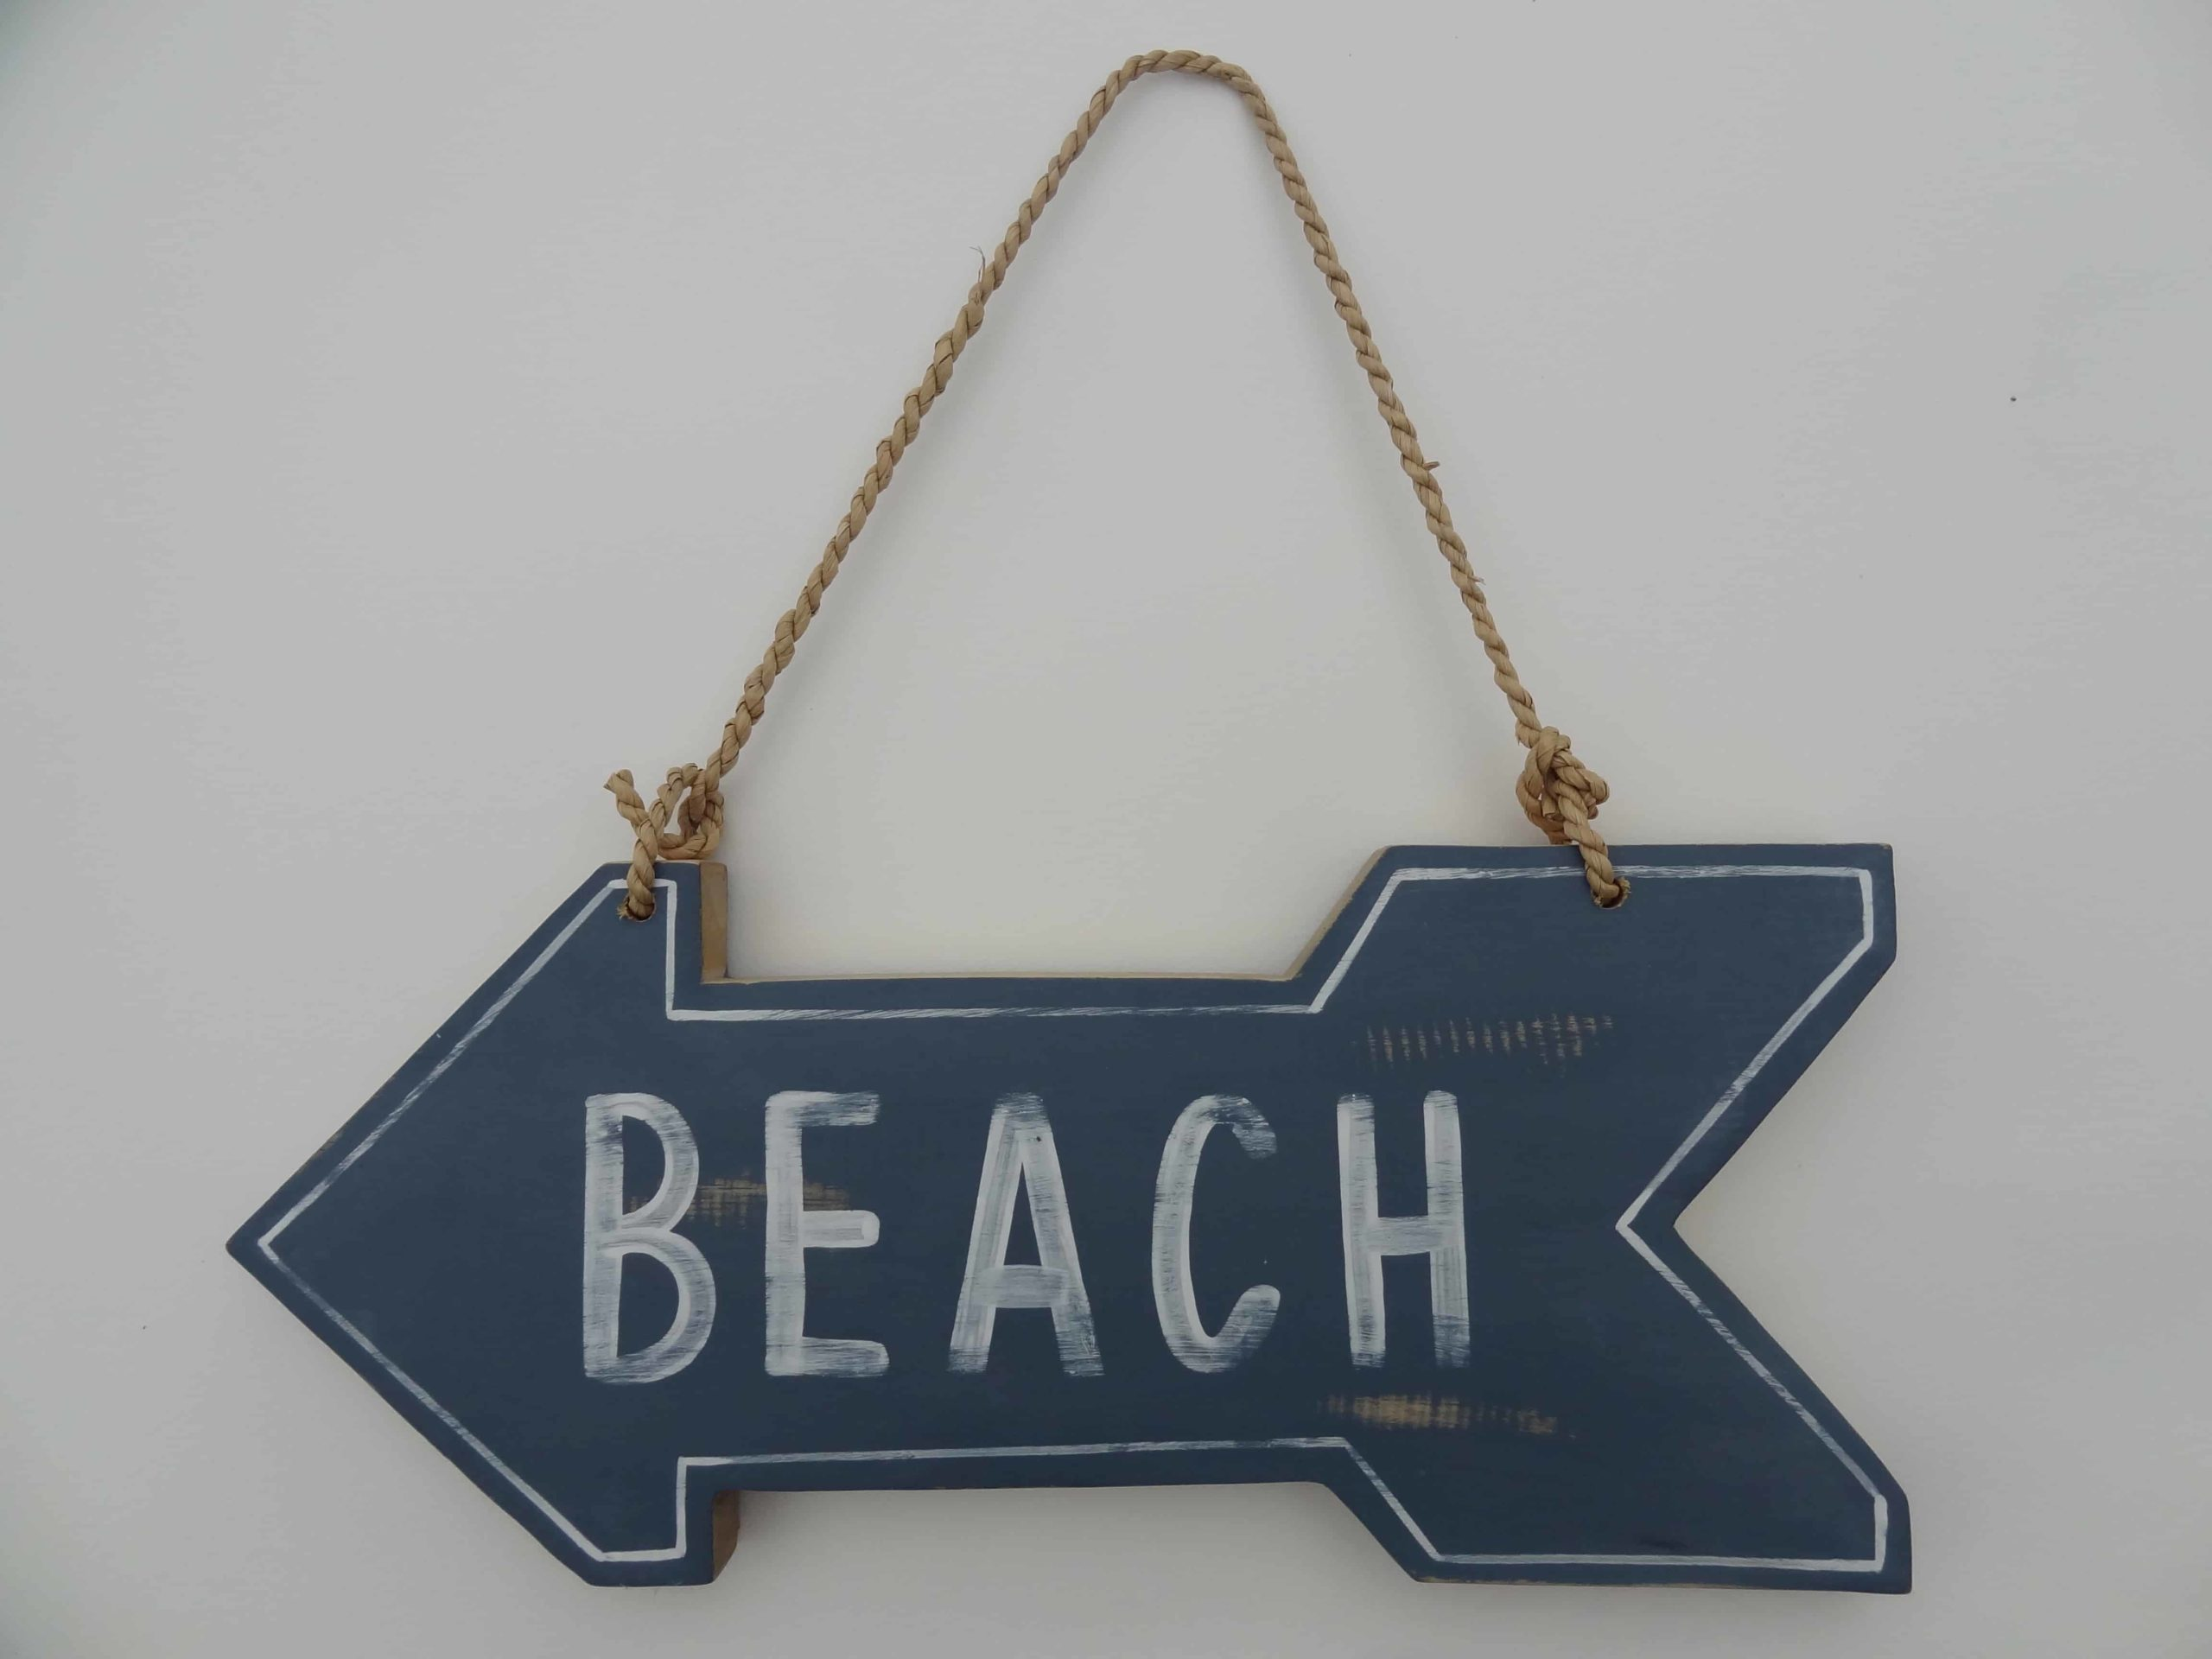 This Way to the Beach